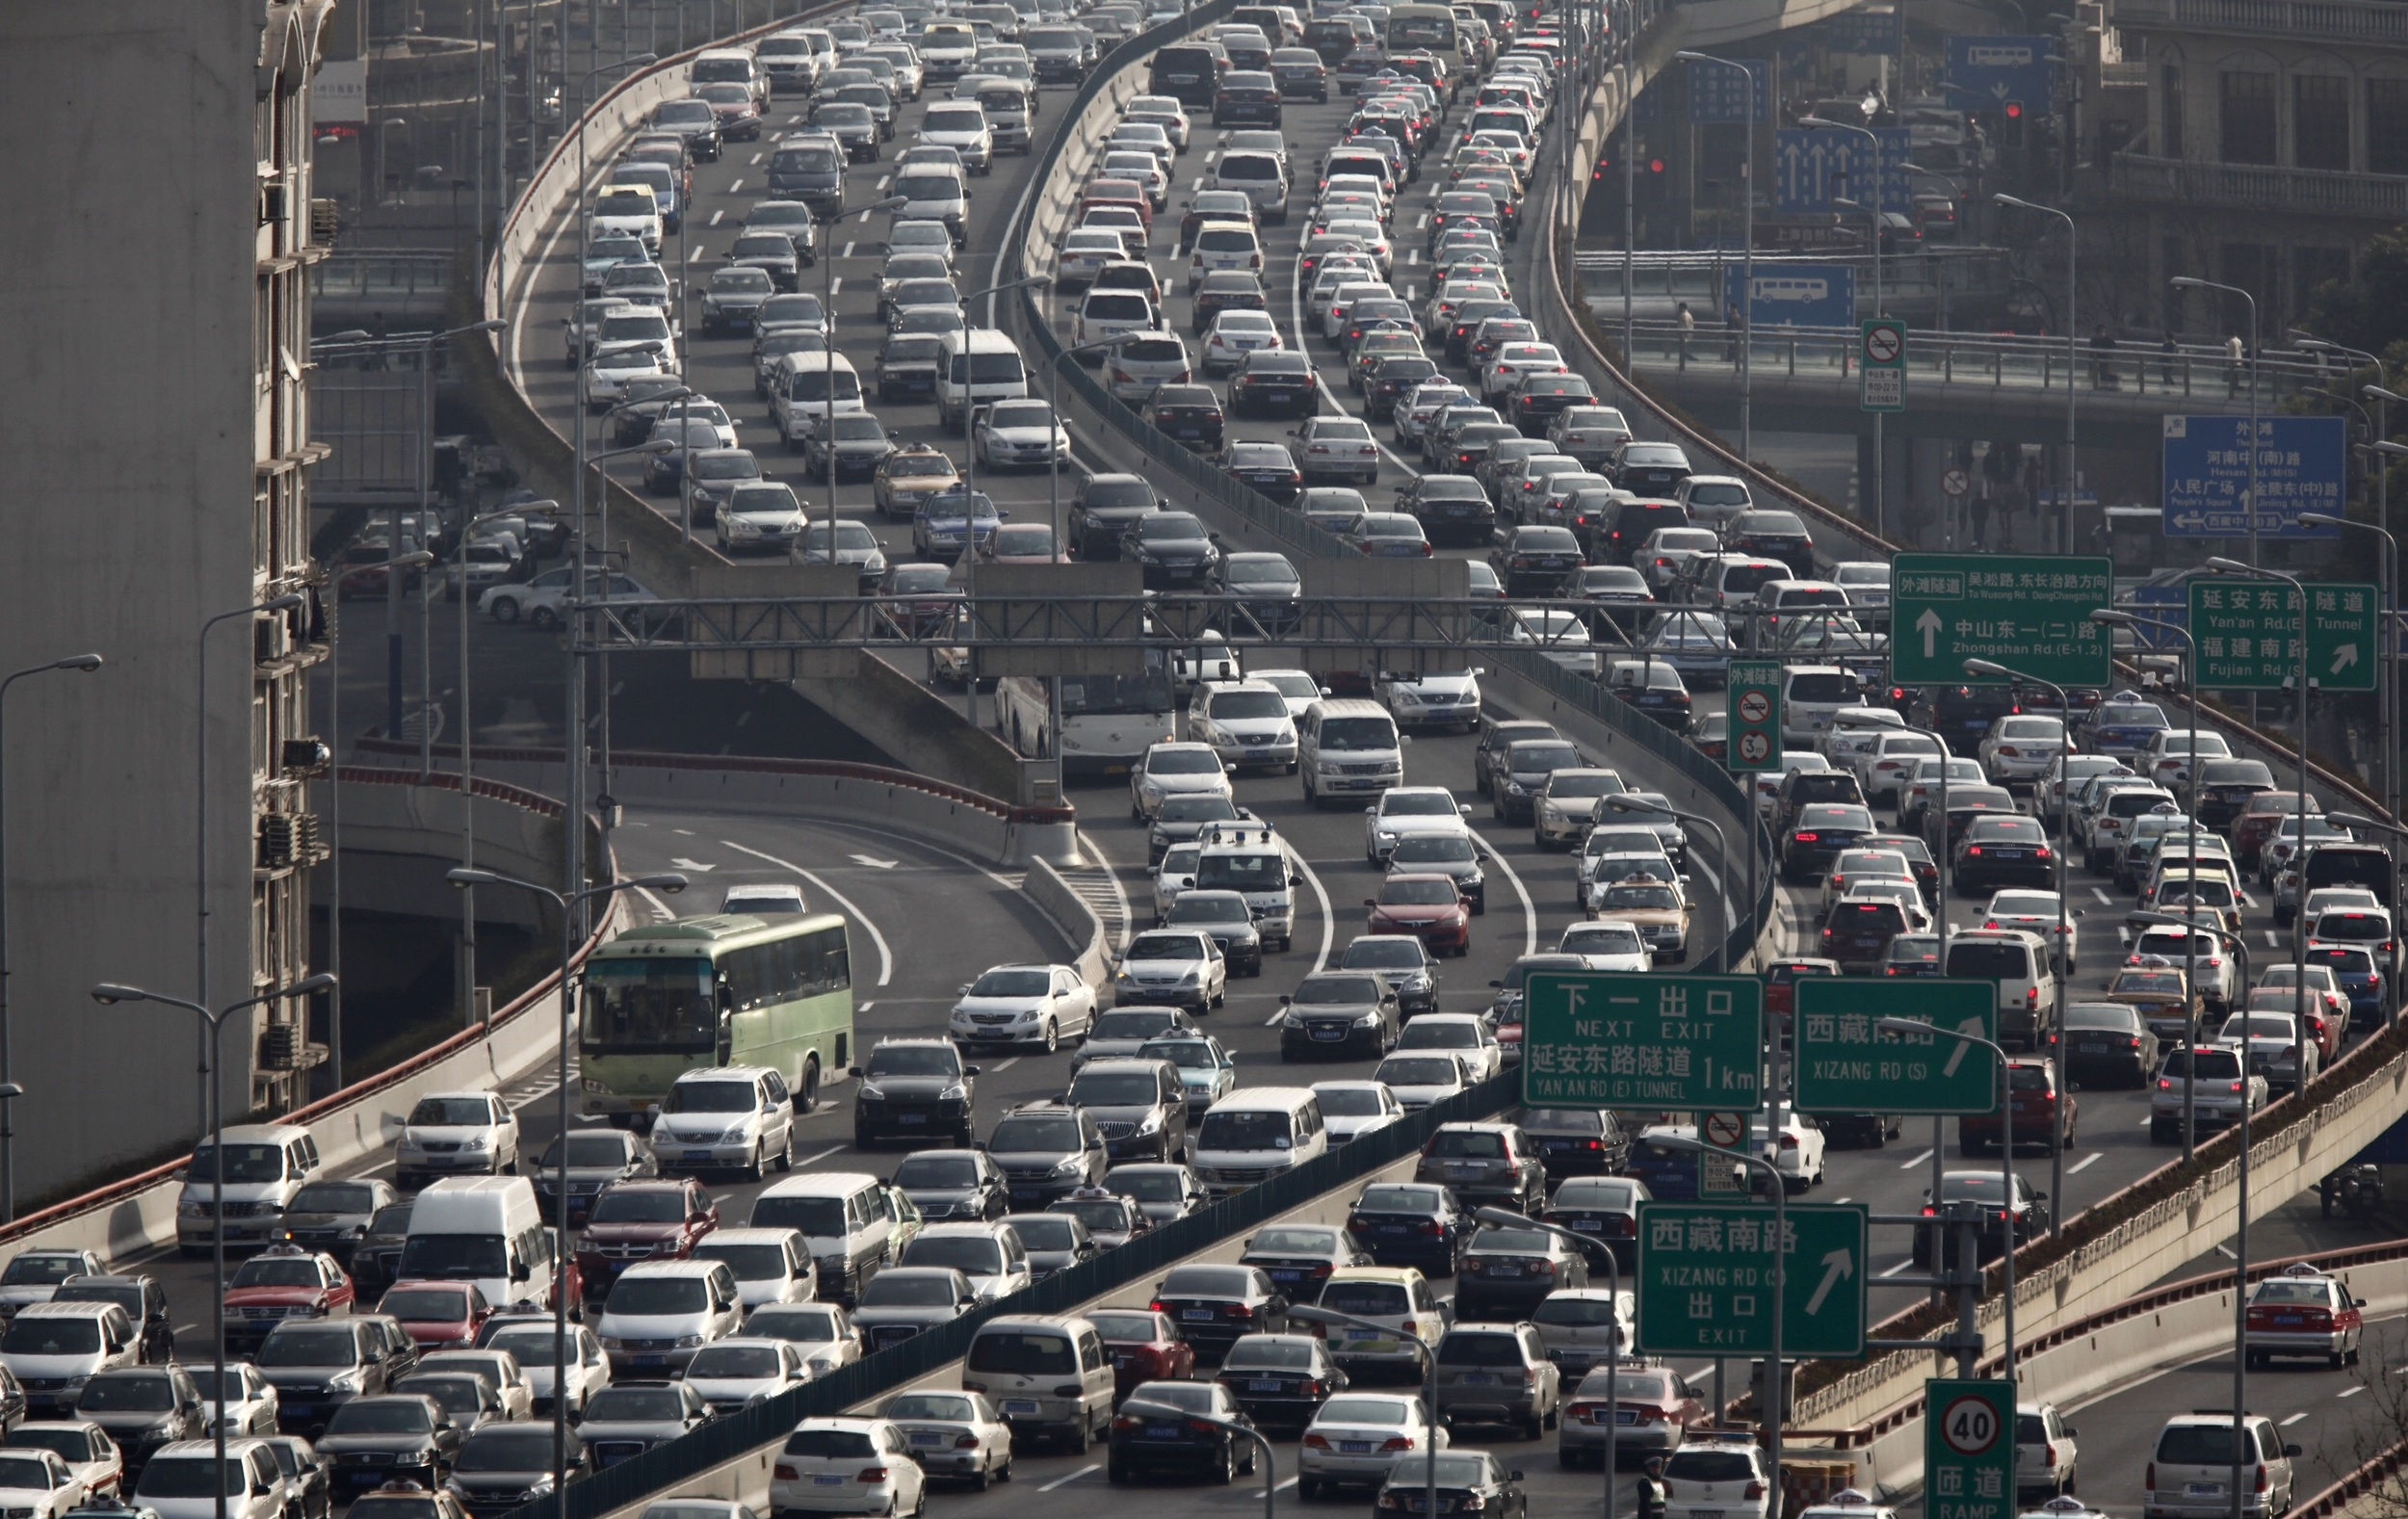 A normal day on Shanghai roads.